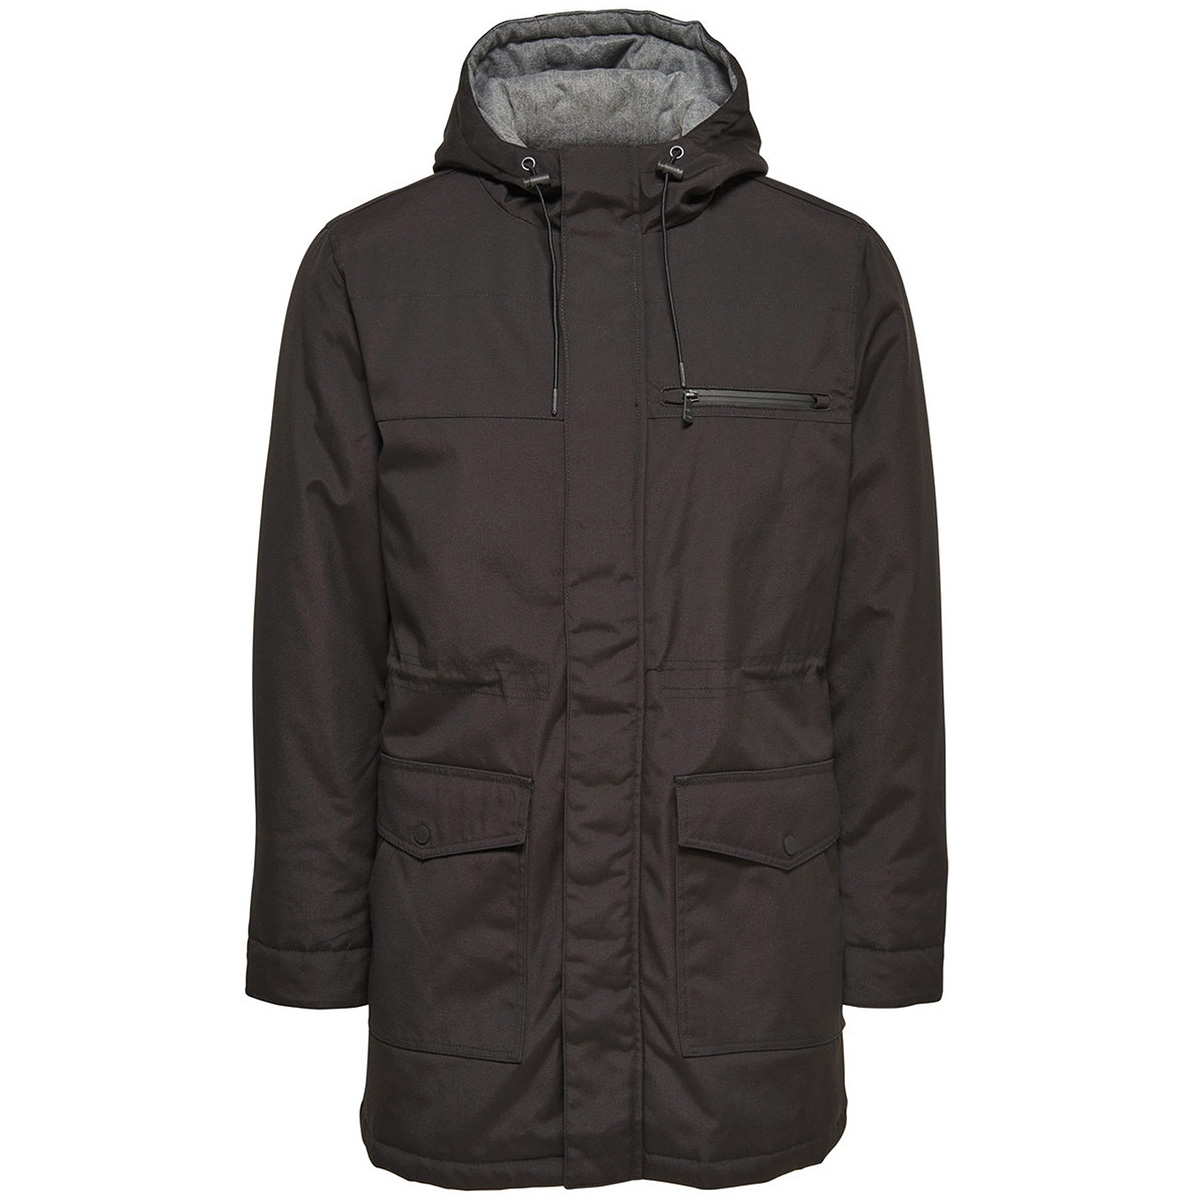 onsjohann jacket 22003876 only & sons jas black